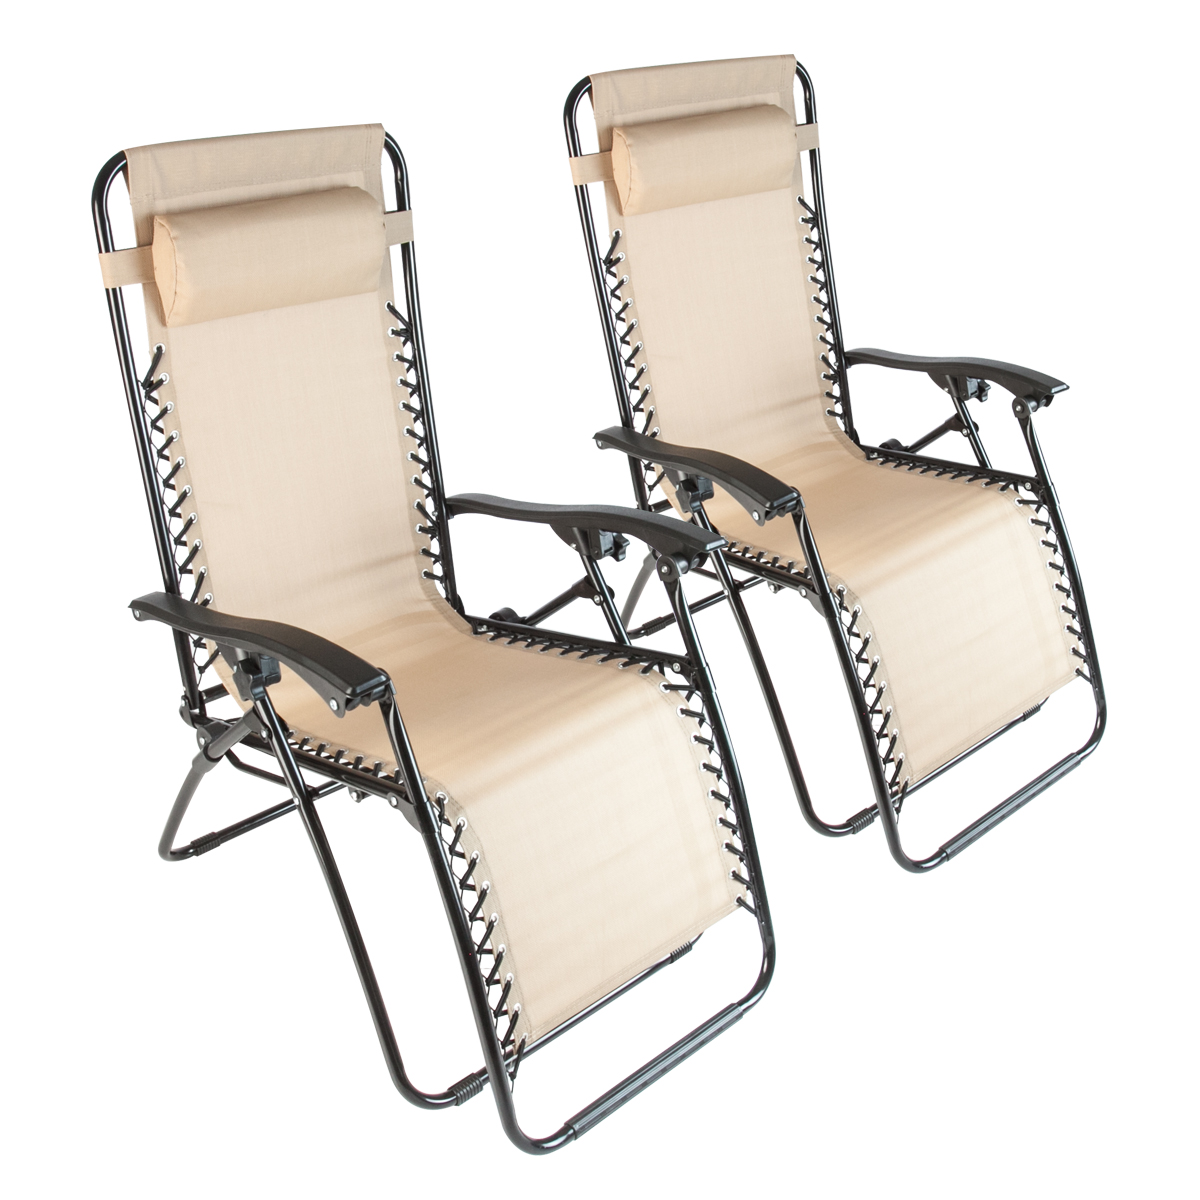 2 Beach Zero Gravity Folding Lounge Chairs Recliner Patio Pool Beige Outdoor